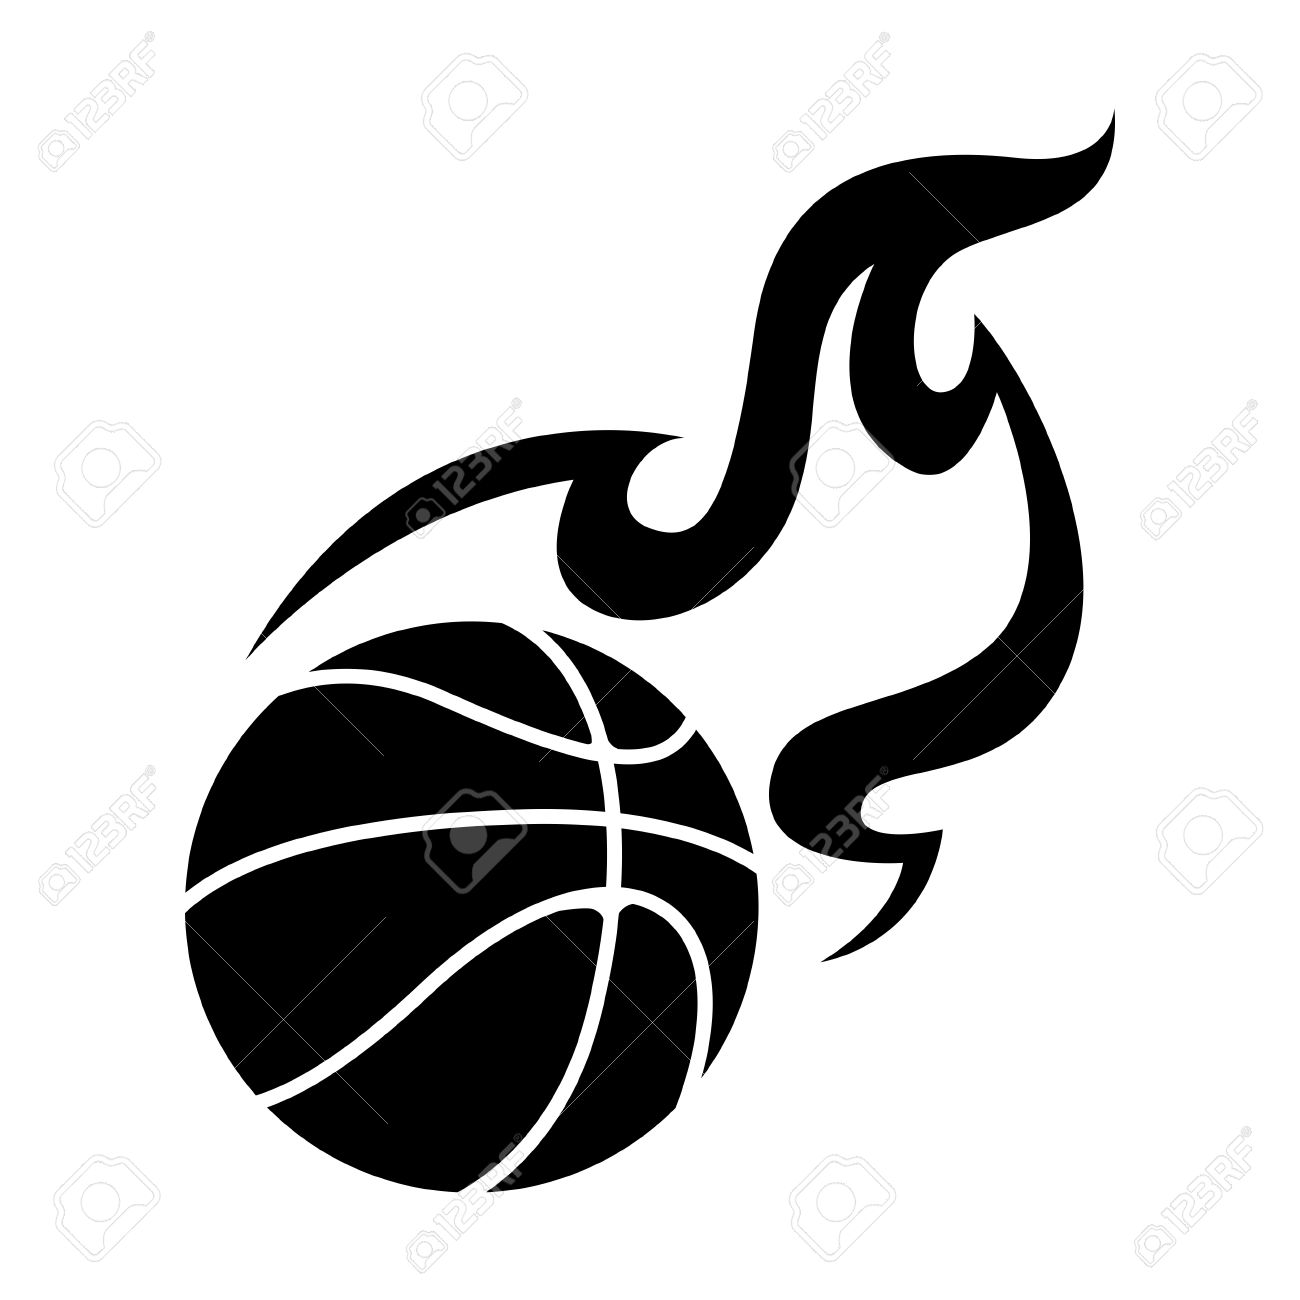 Basketball Clipart Black And White Vector.